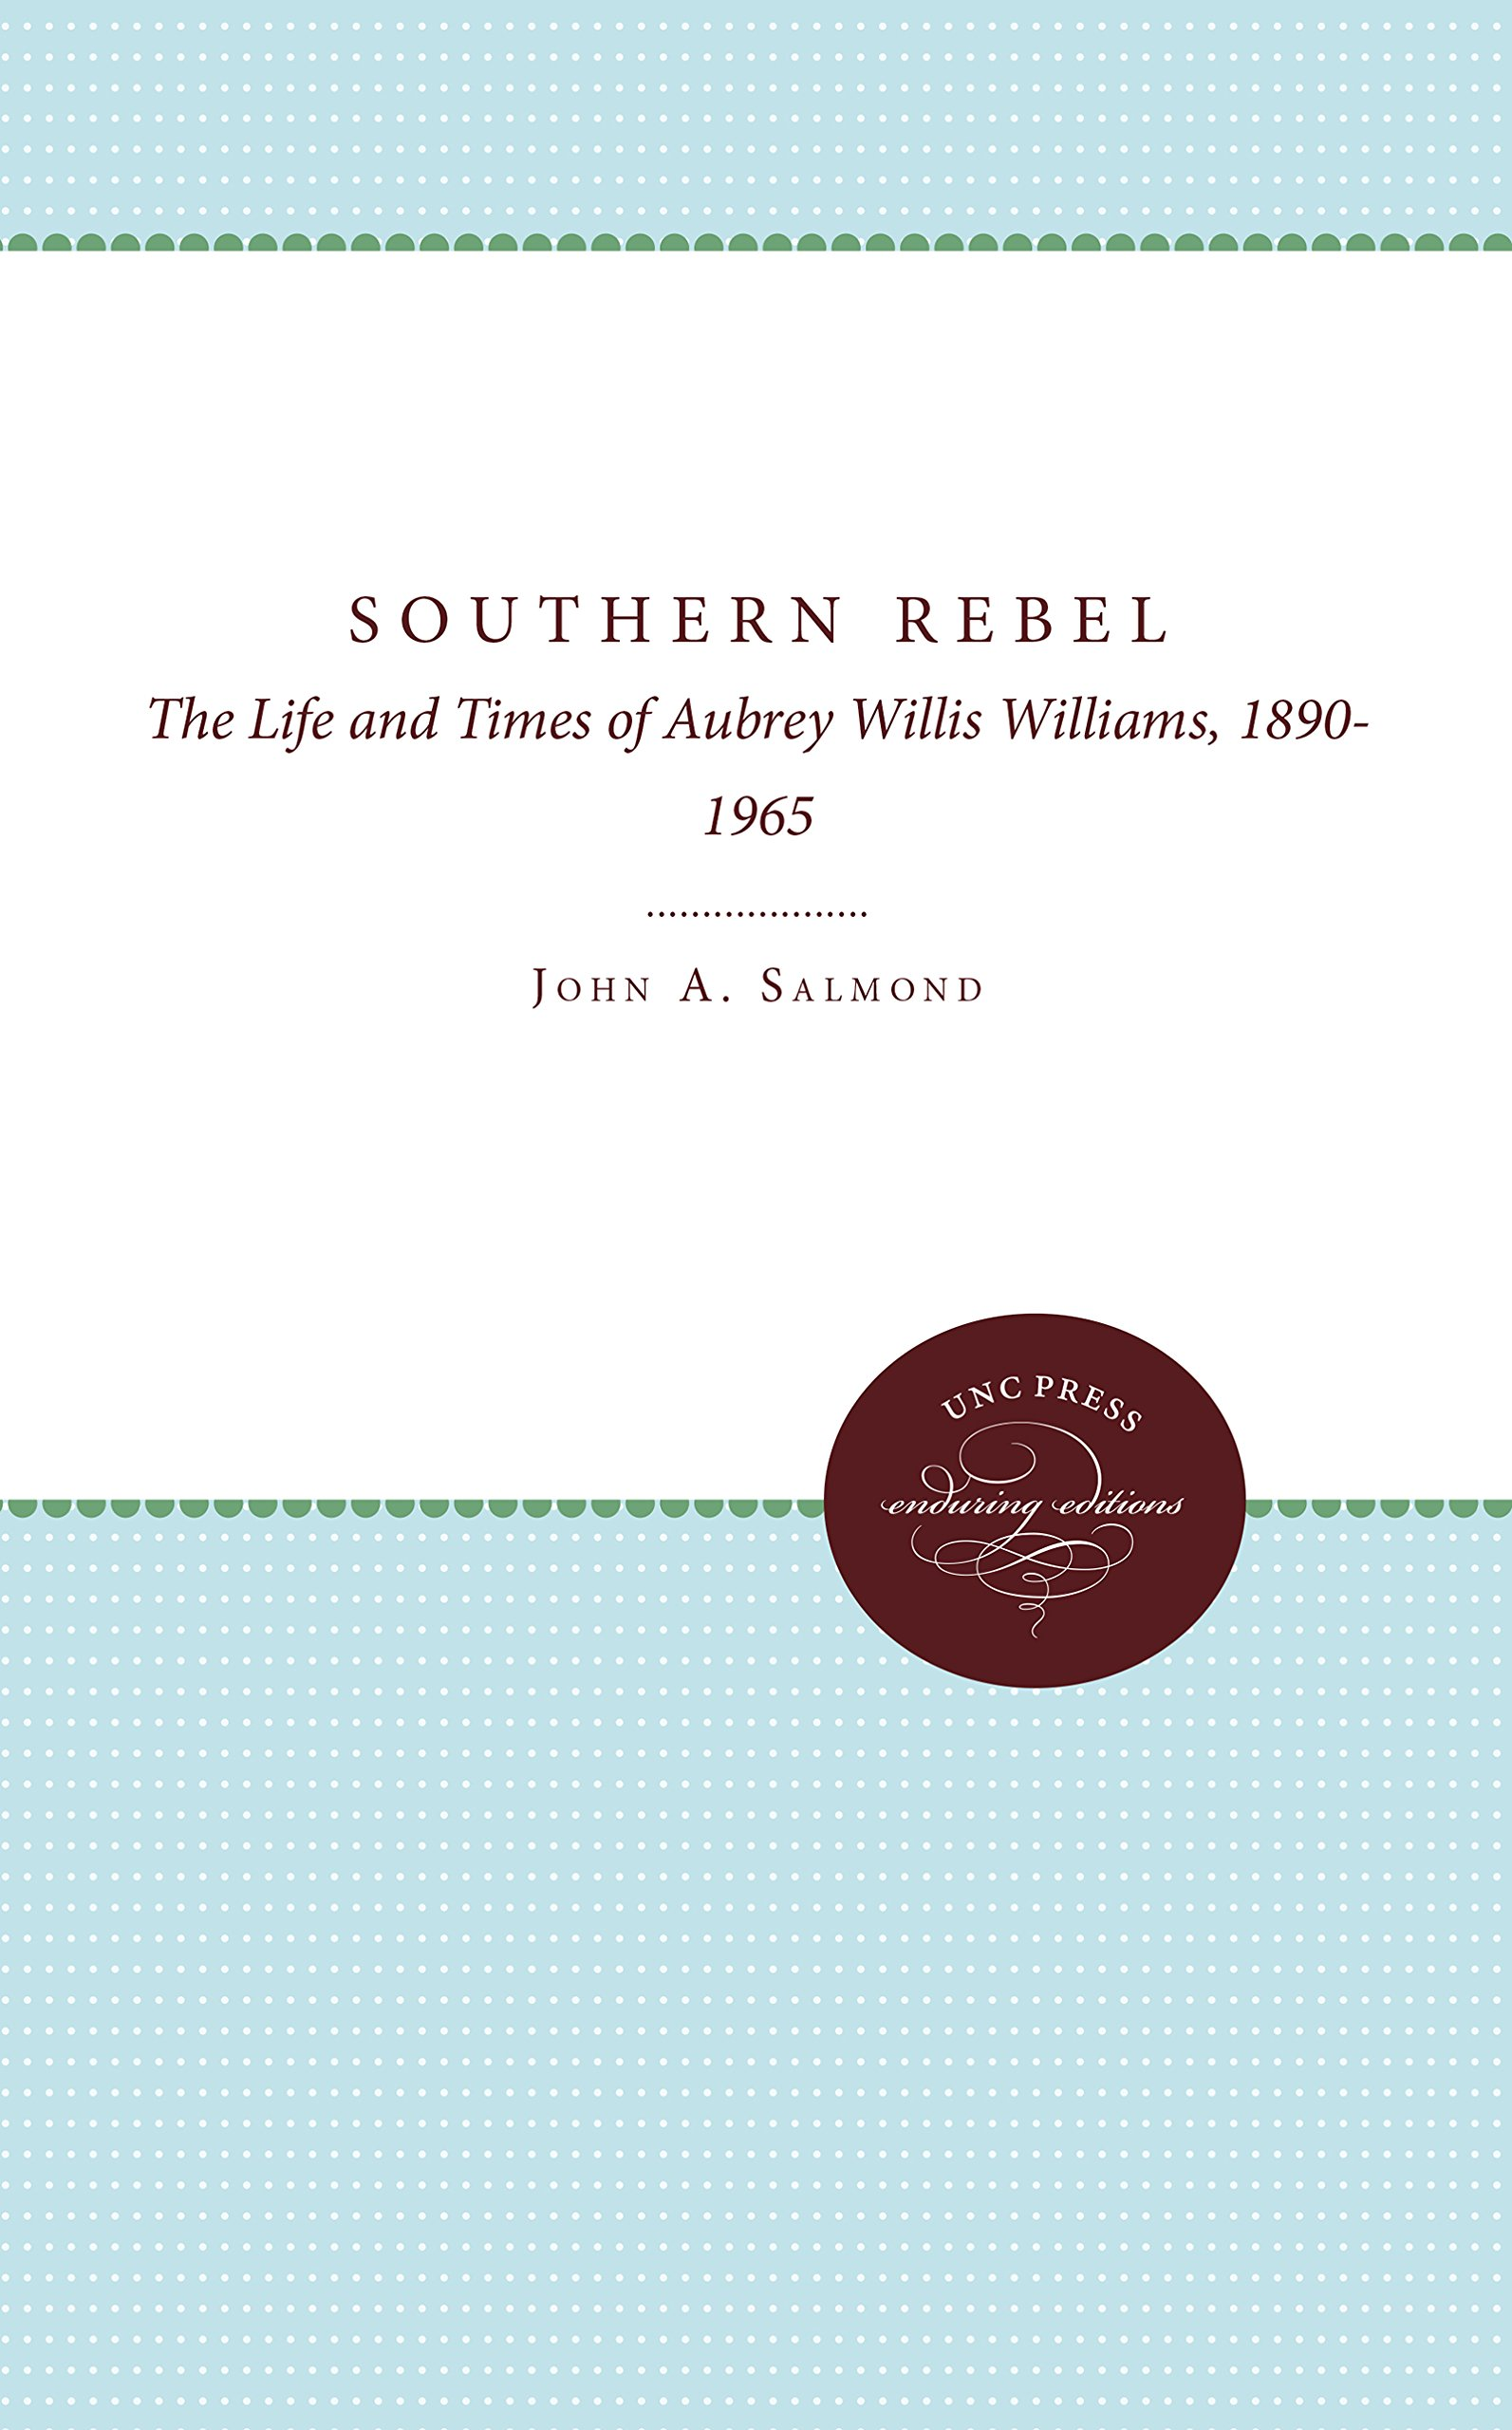 Download A Southern Rebel: The Life and Times of Aubrey Willis Williams, 1890-1965 ebook